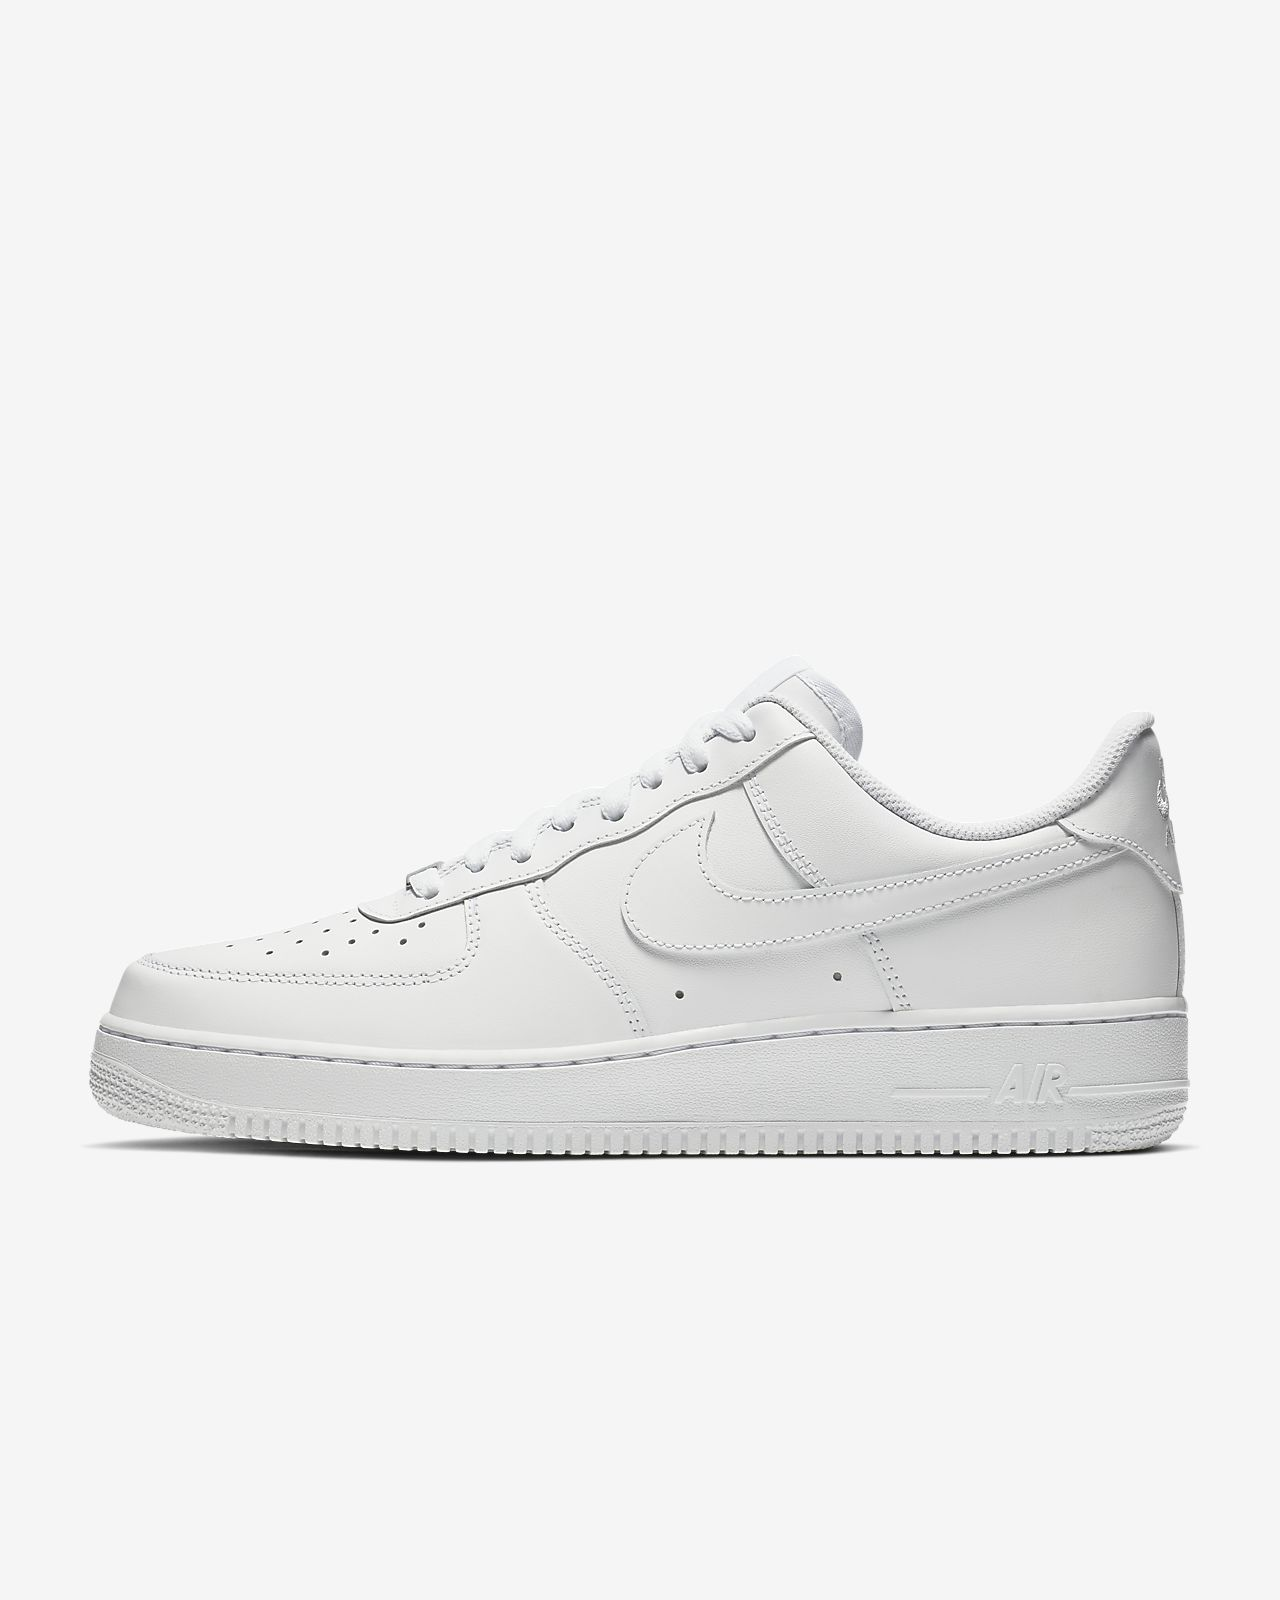 54ba691523 Nike Air Force 1 '07 Men's Shoe